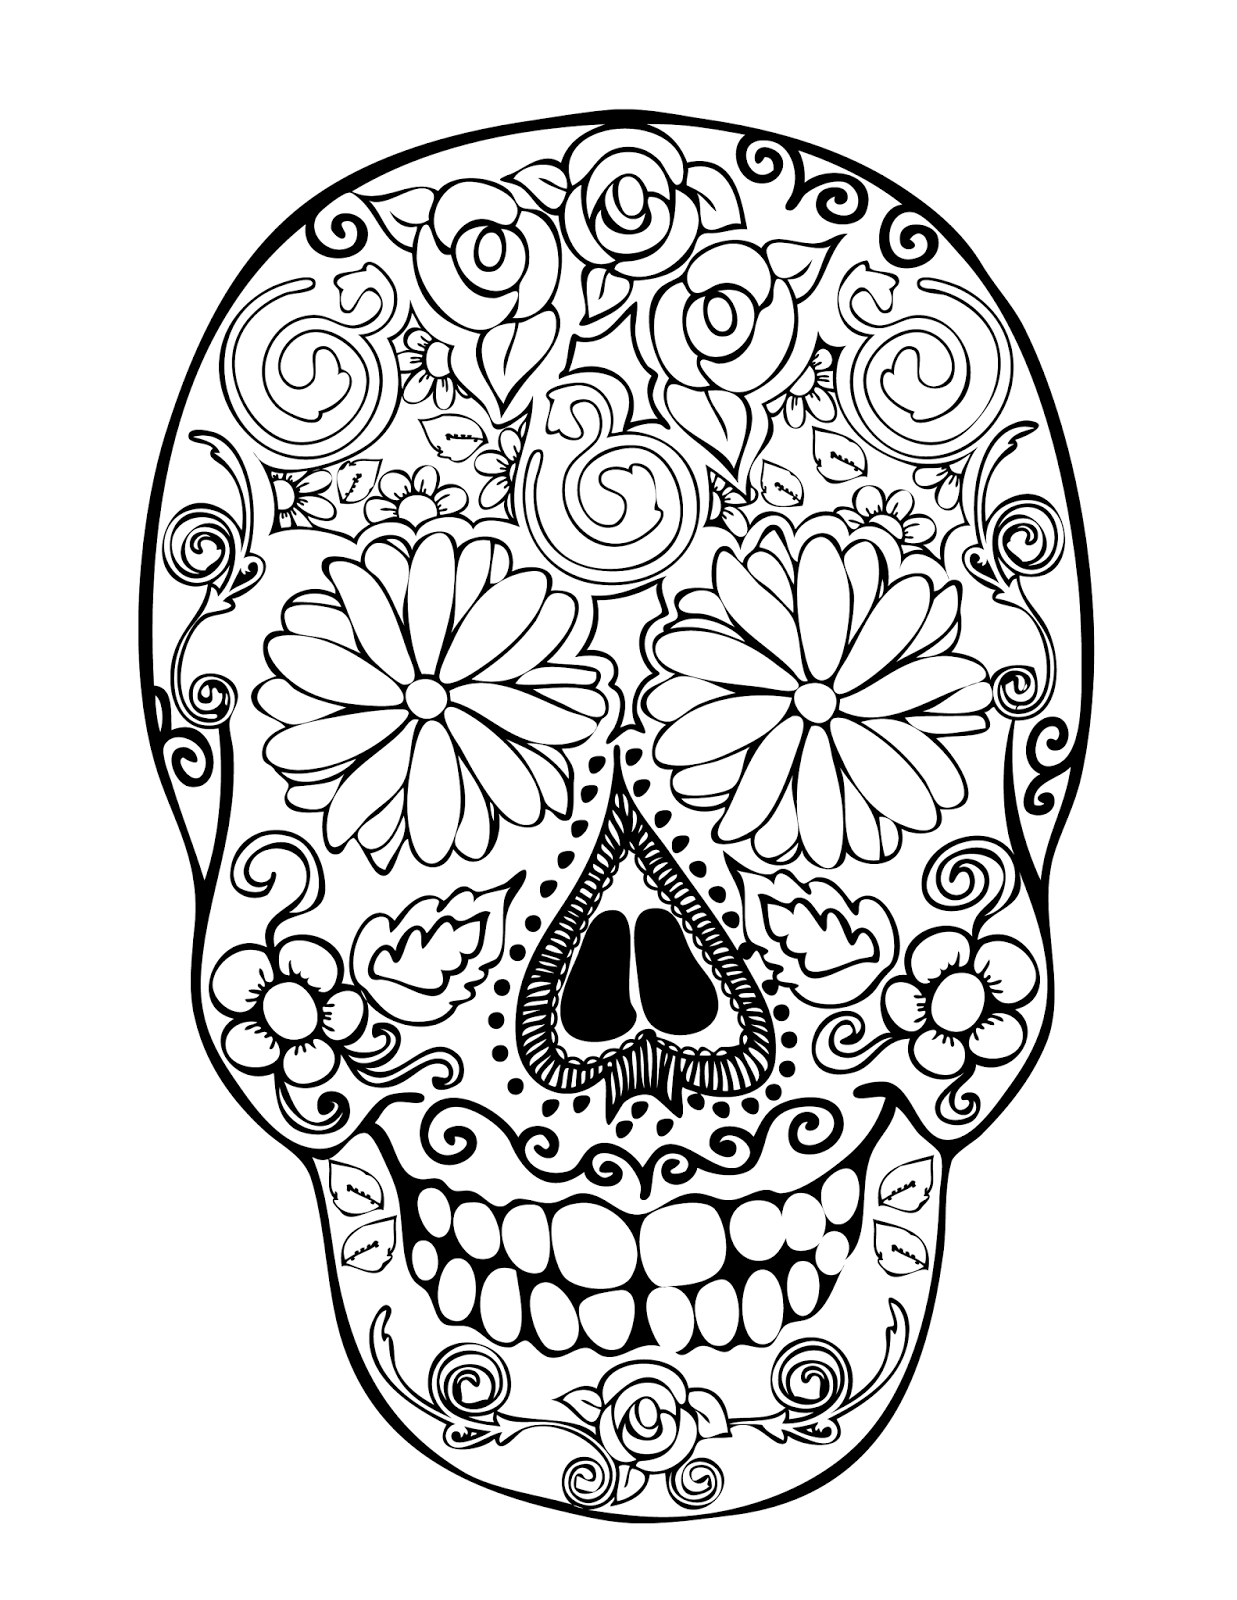 Sugar Skull Coloring Pages Skull Coloring Pages Coloring Pages Free Coloring Pages